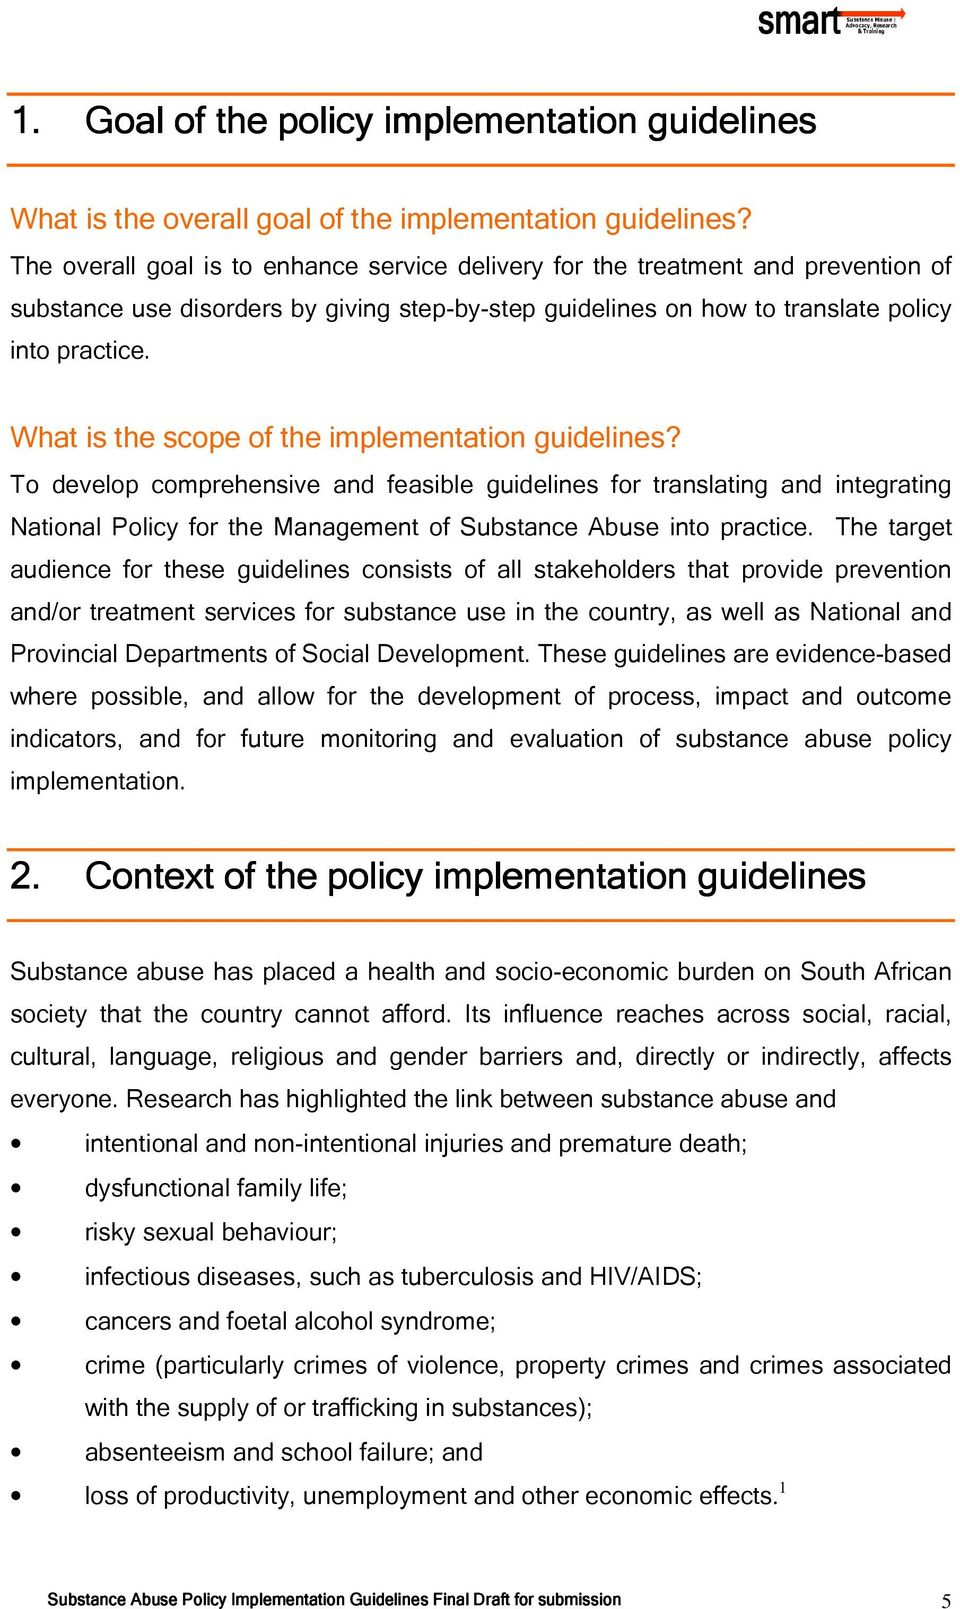 What is the scope of the implementation guidelines?